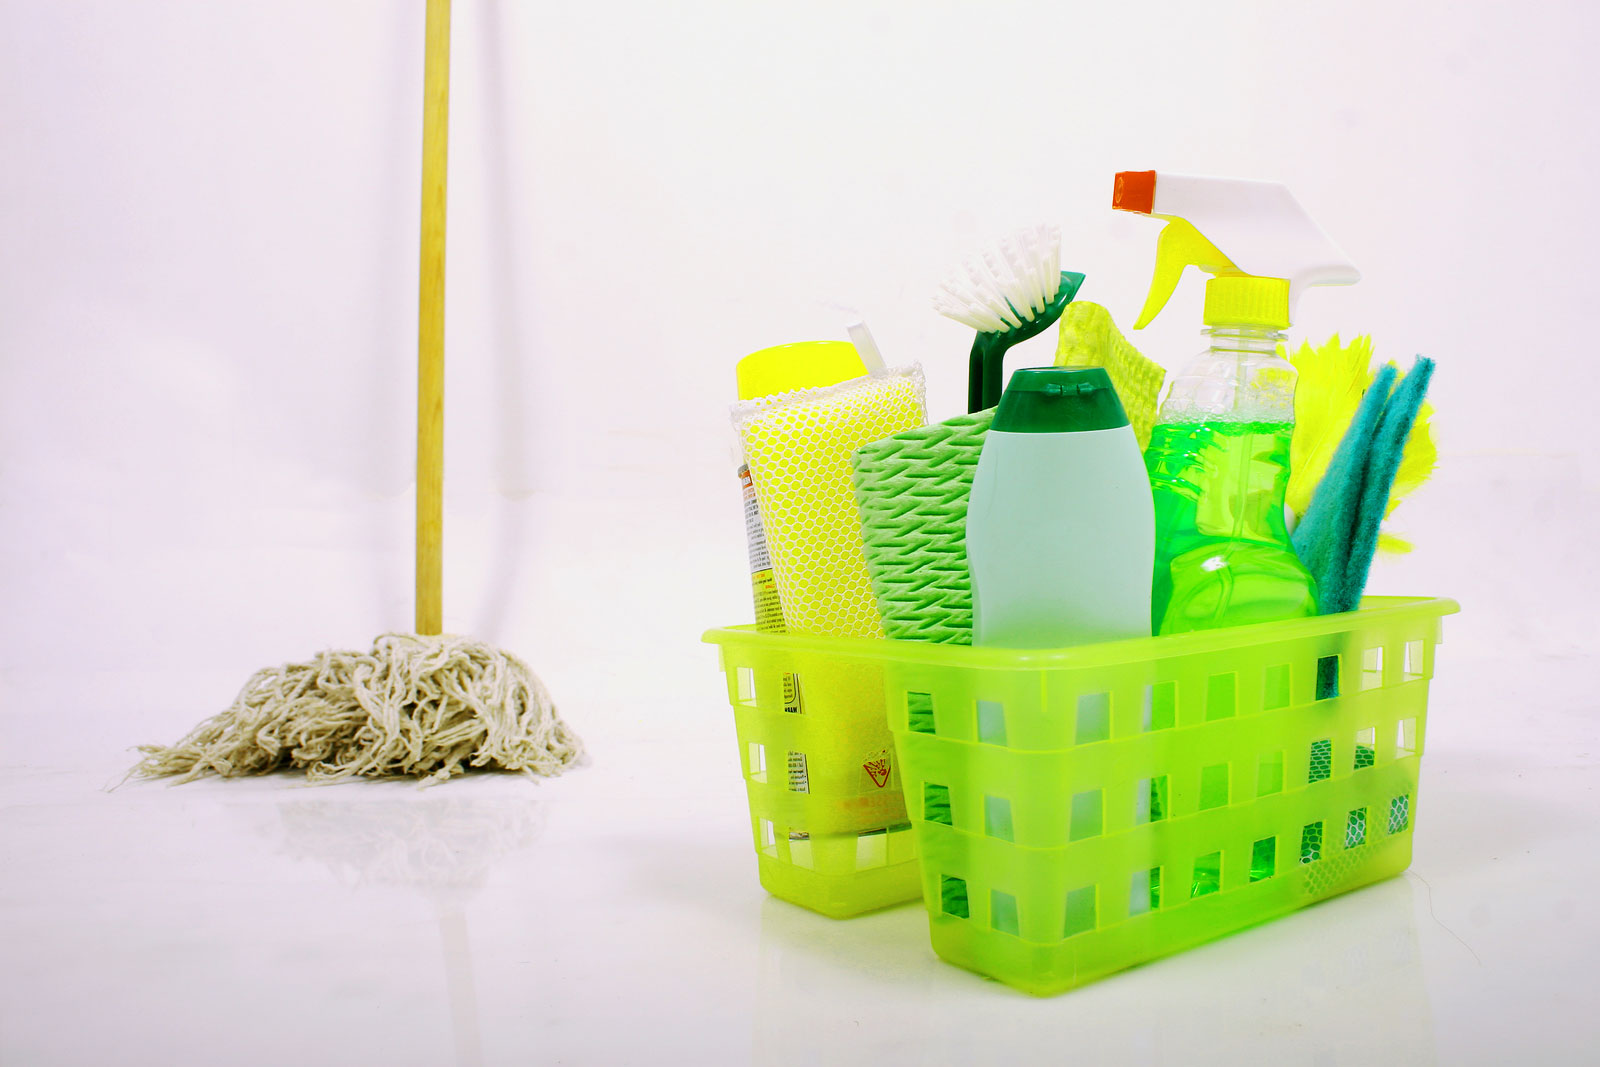 mop-and-chemicals-in-basket